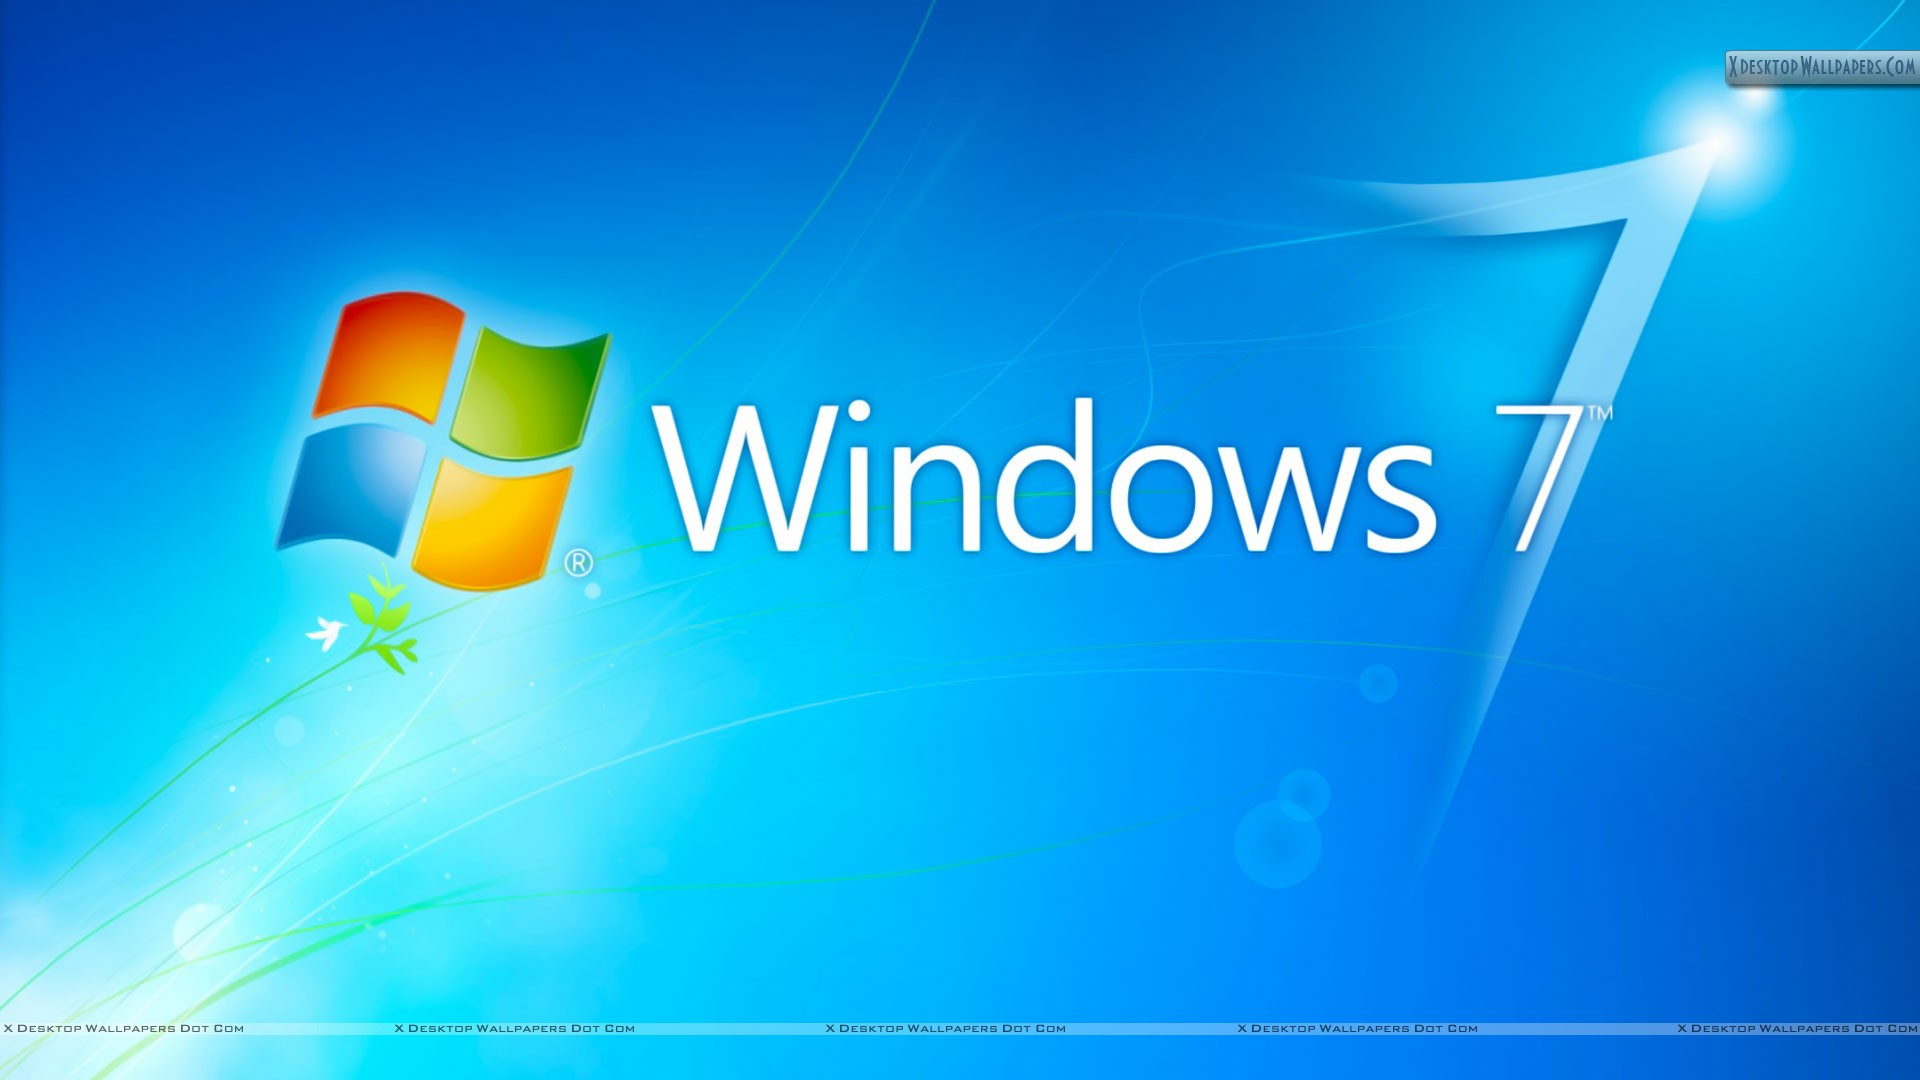 hd windows wallpaper desktop background free wallpaper download